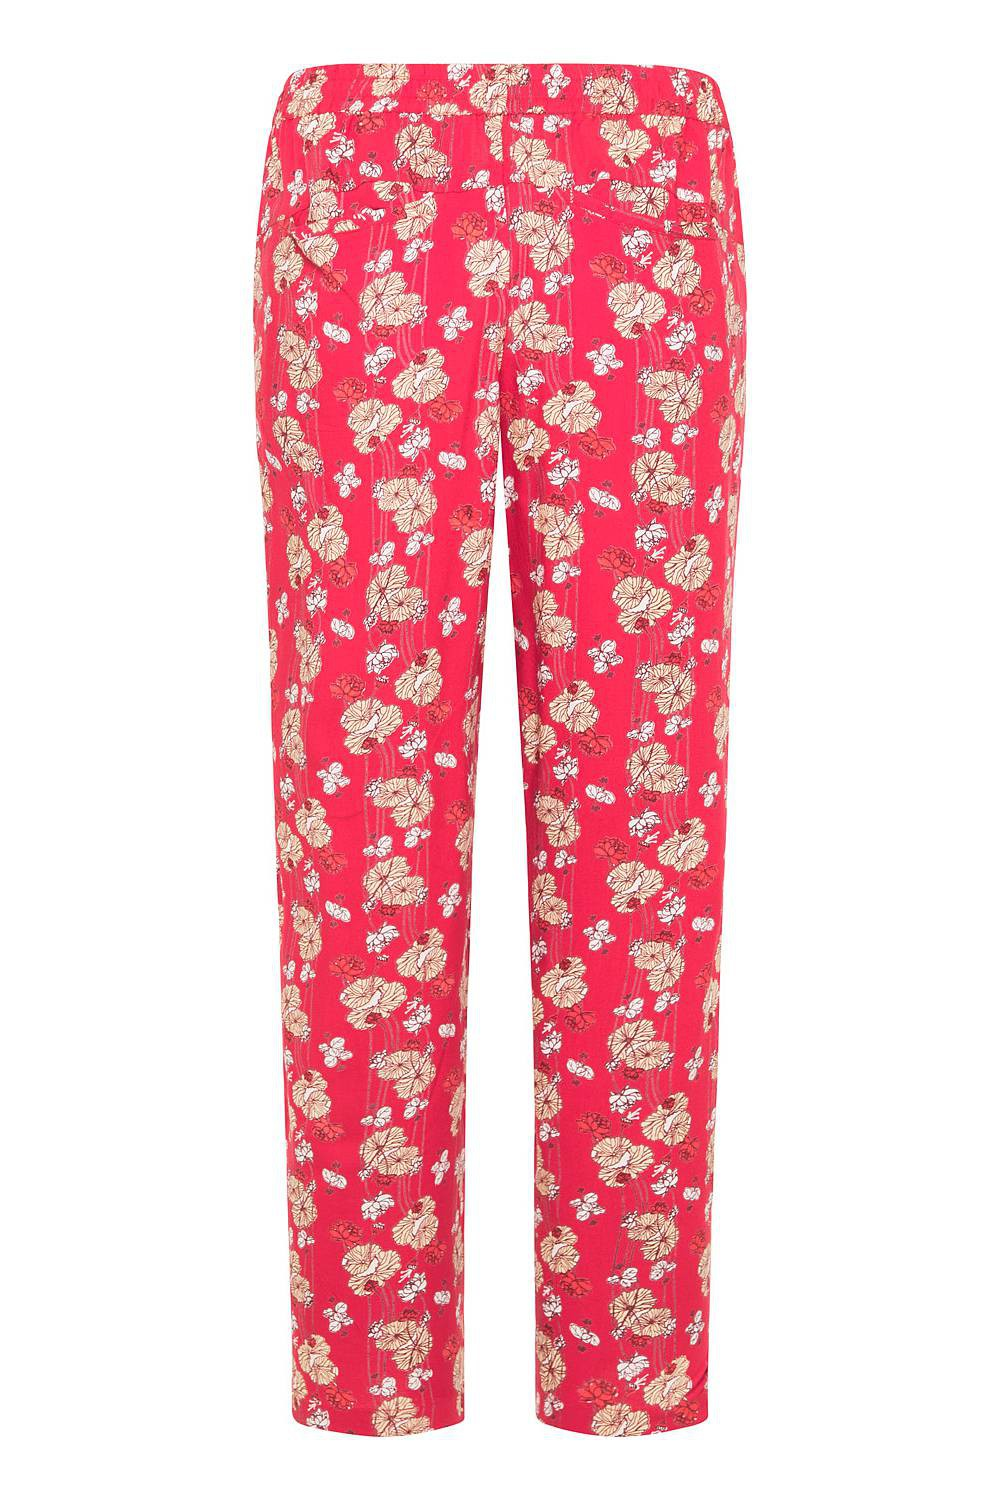 Tranquillo Zwena fluid red trousers